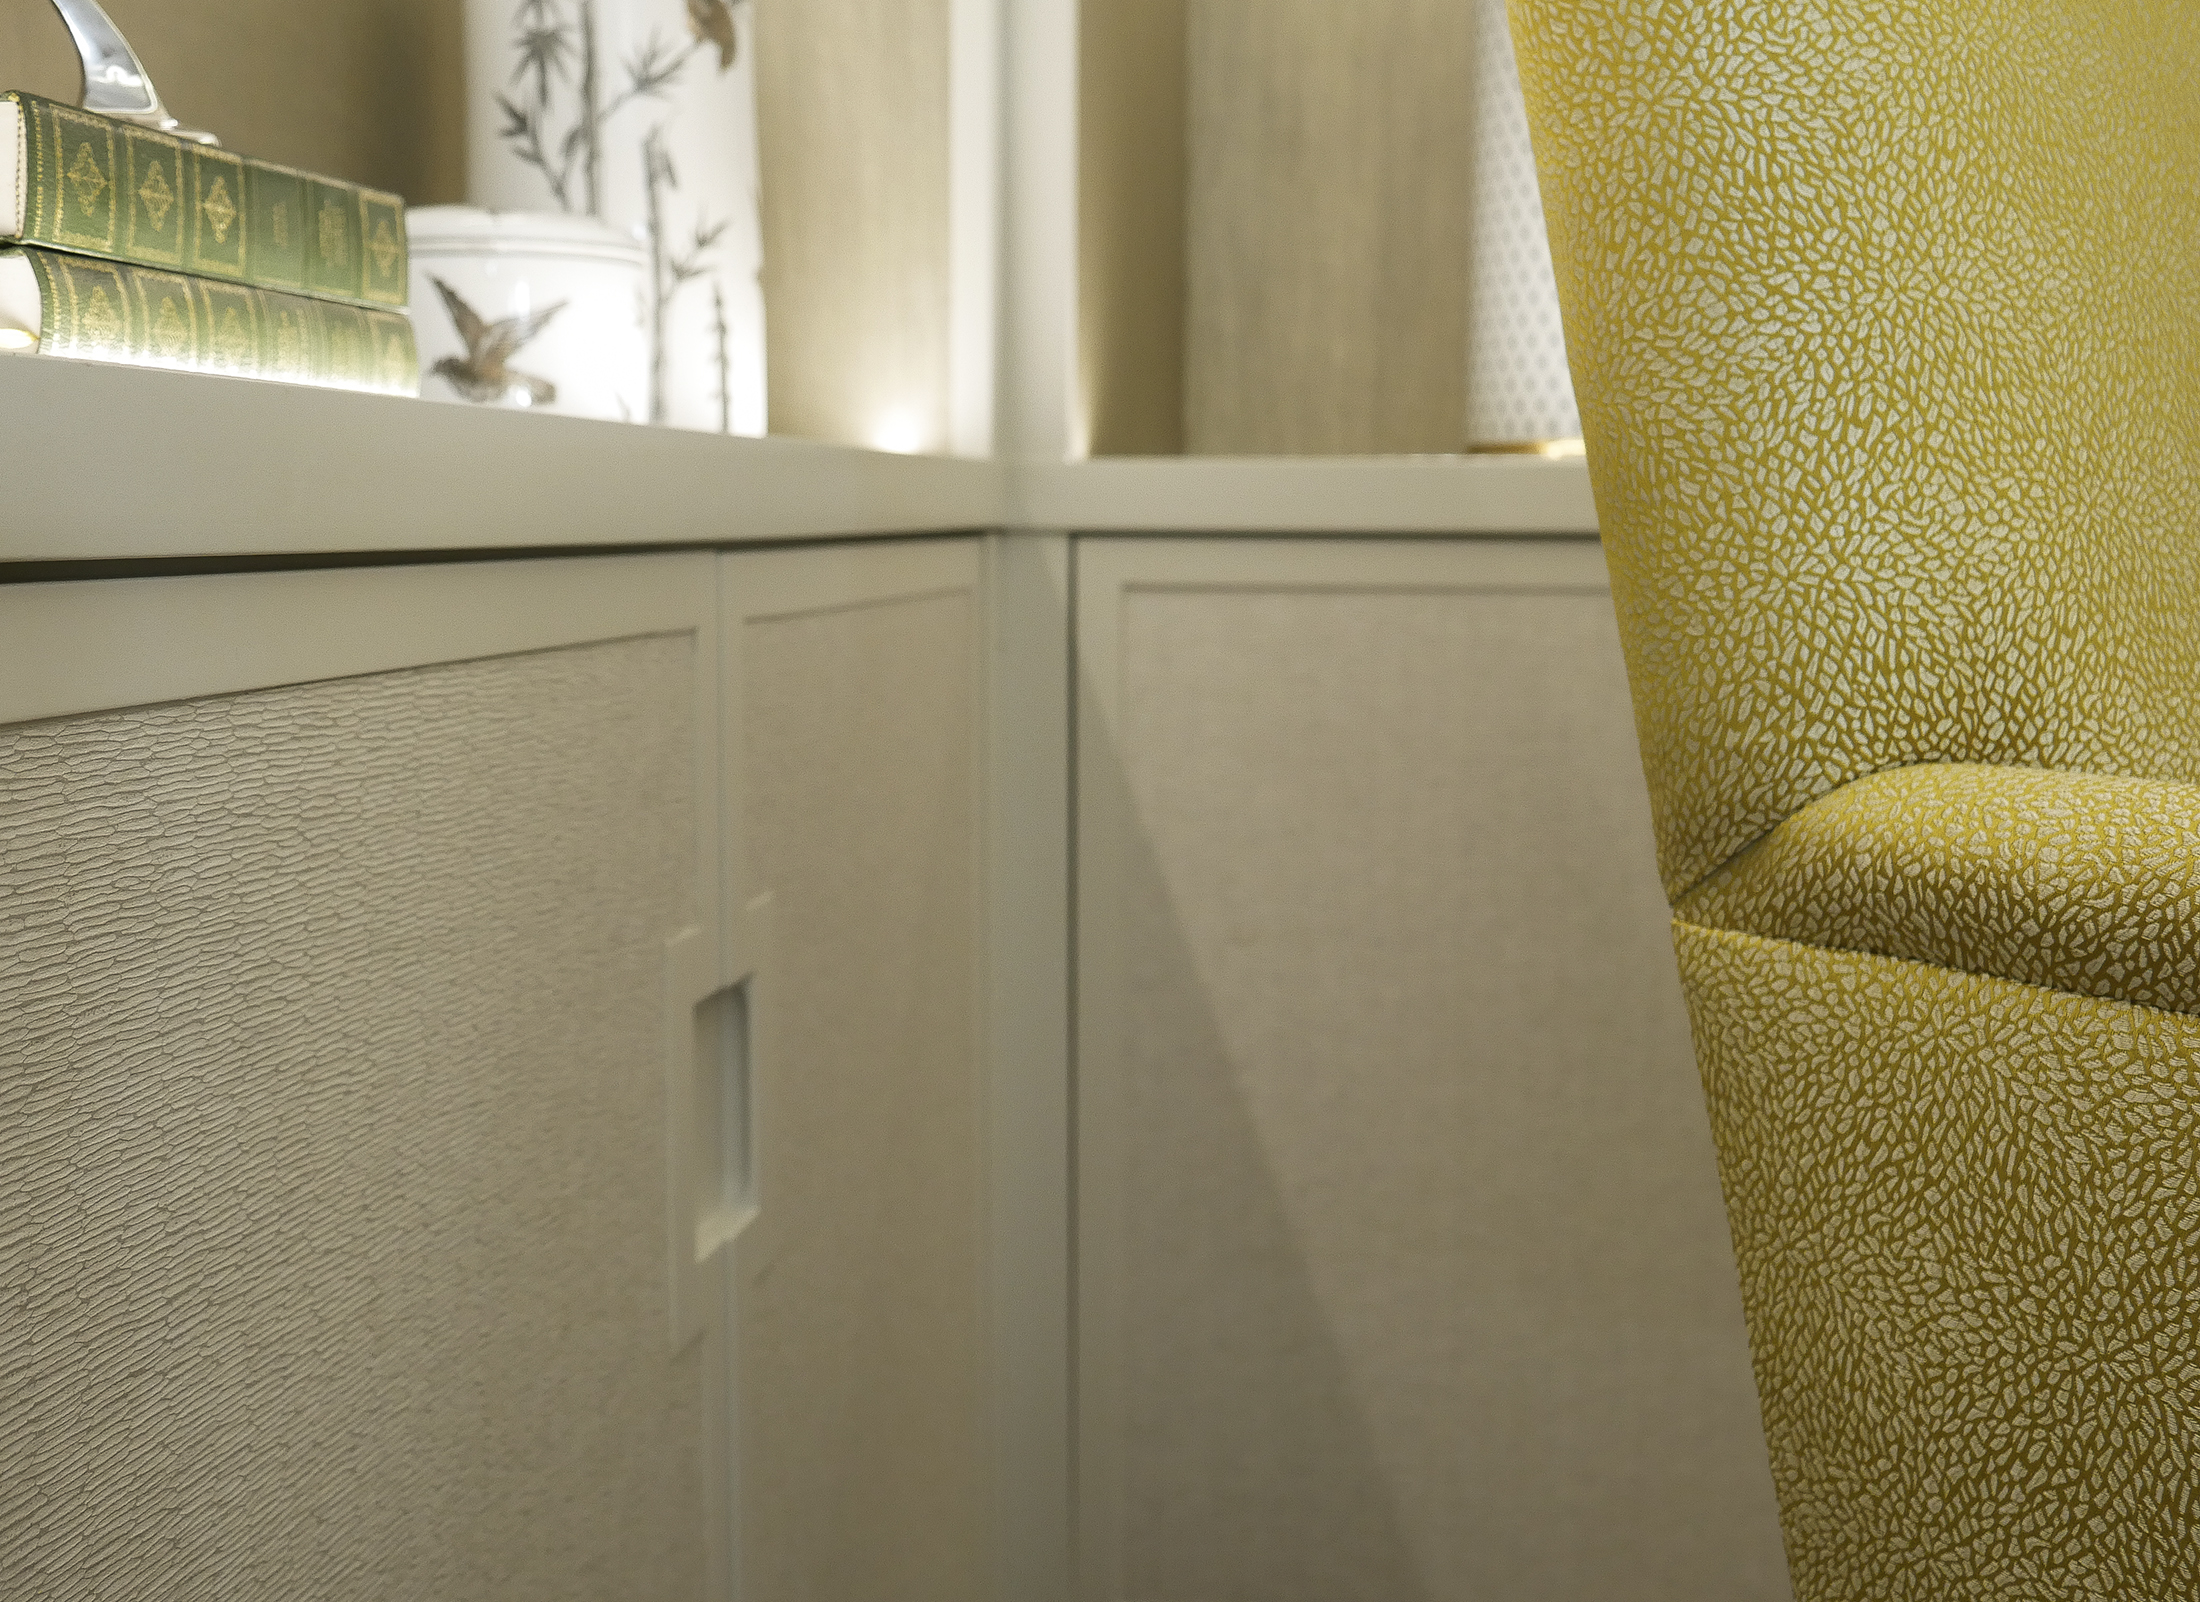 cabinetry | design